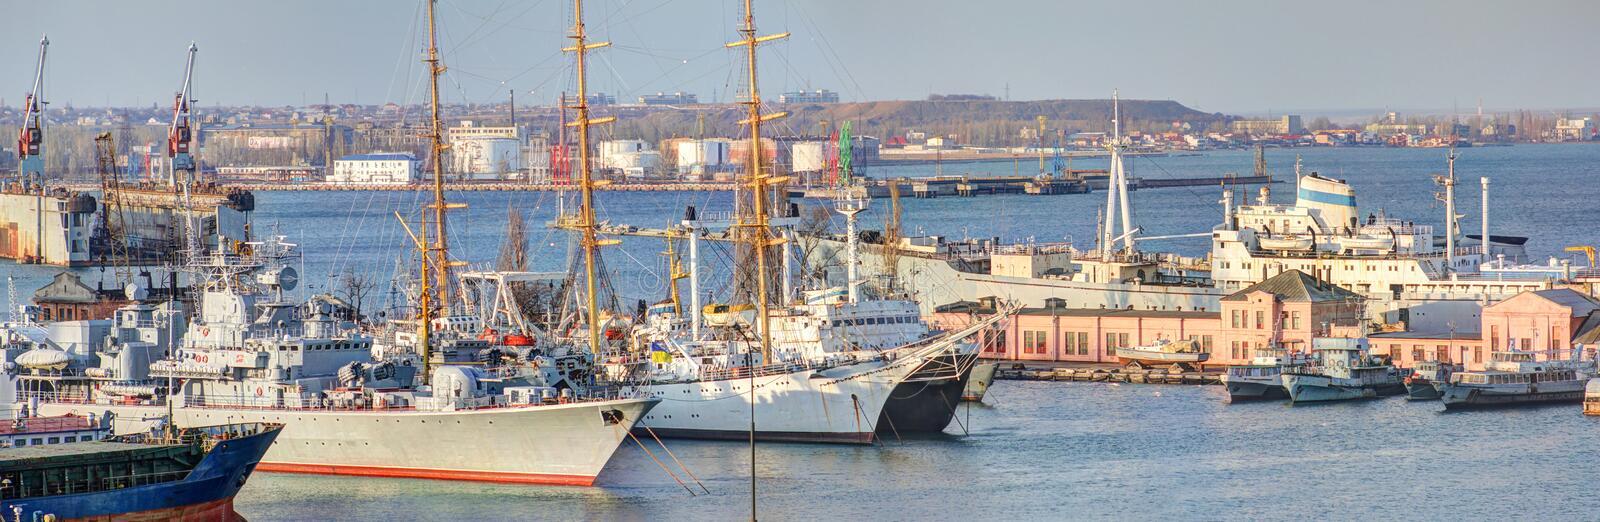 Harbor with military and sailing ships. stock photography